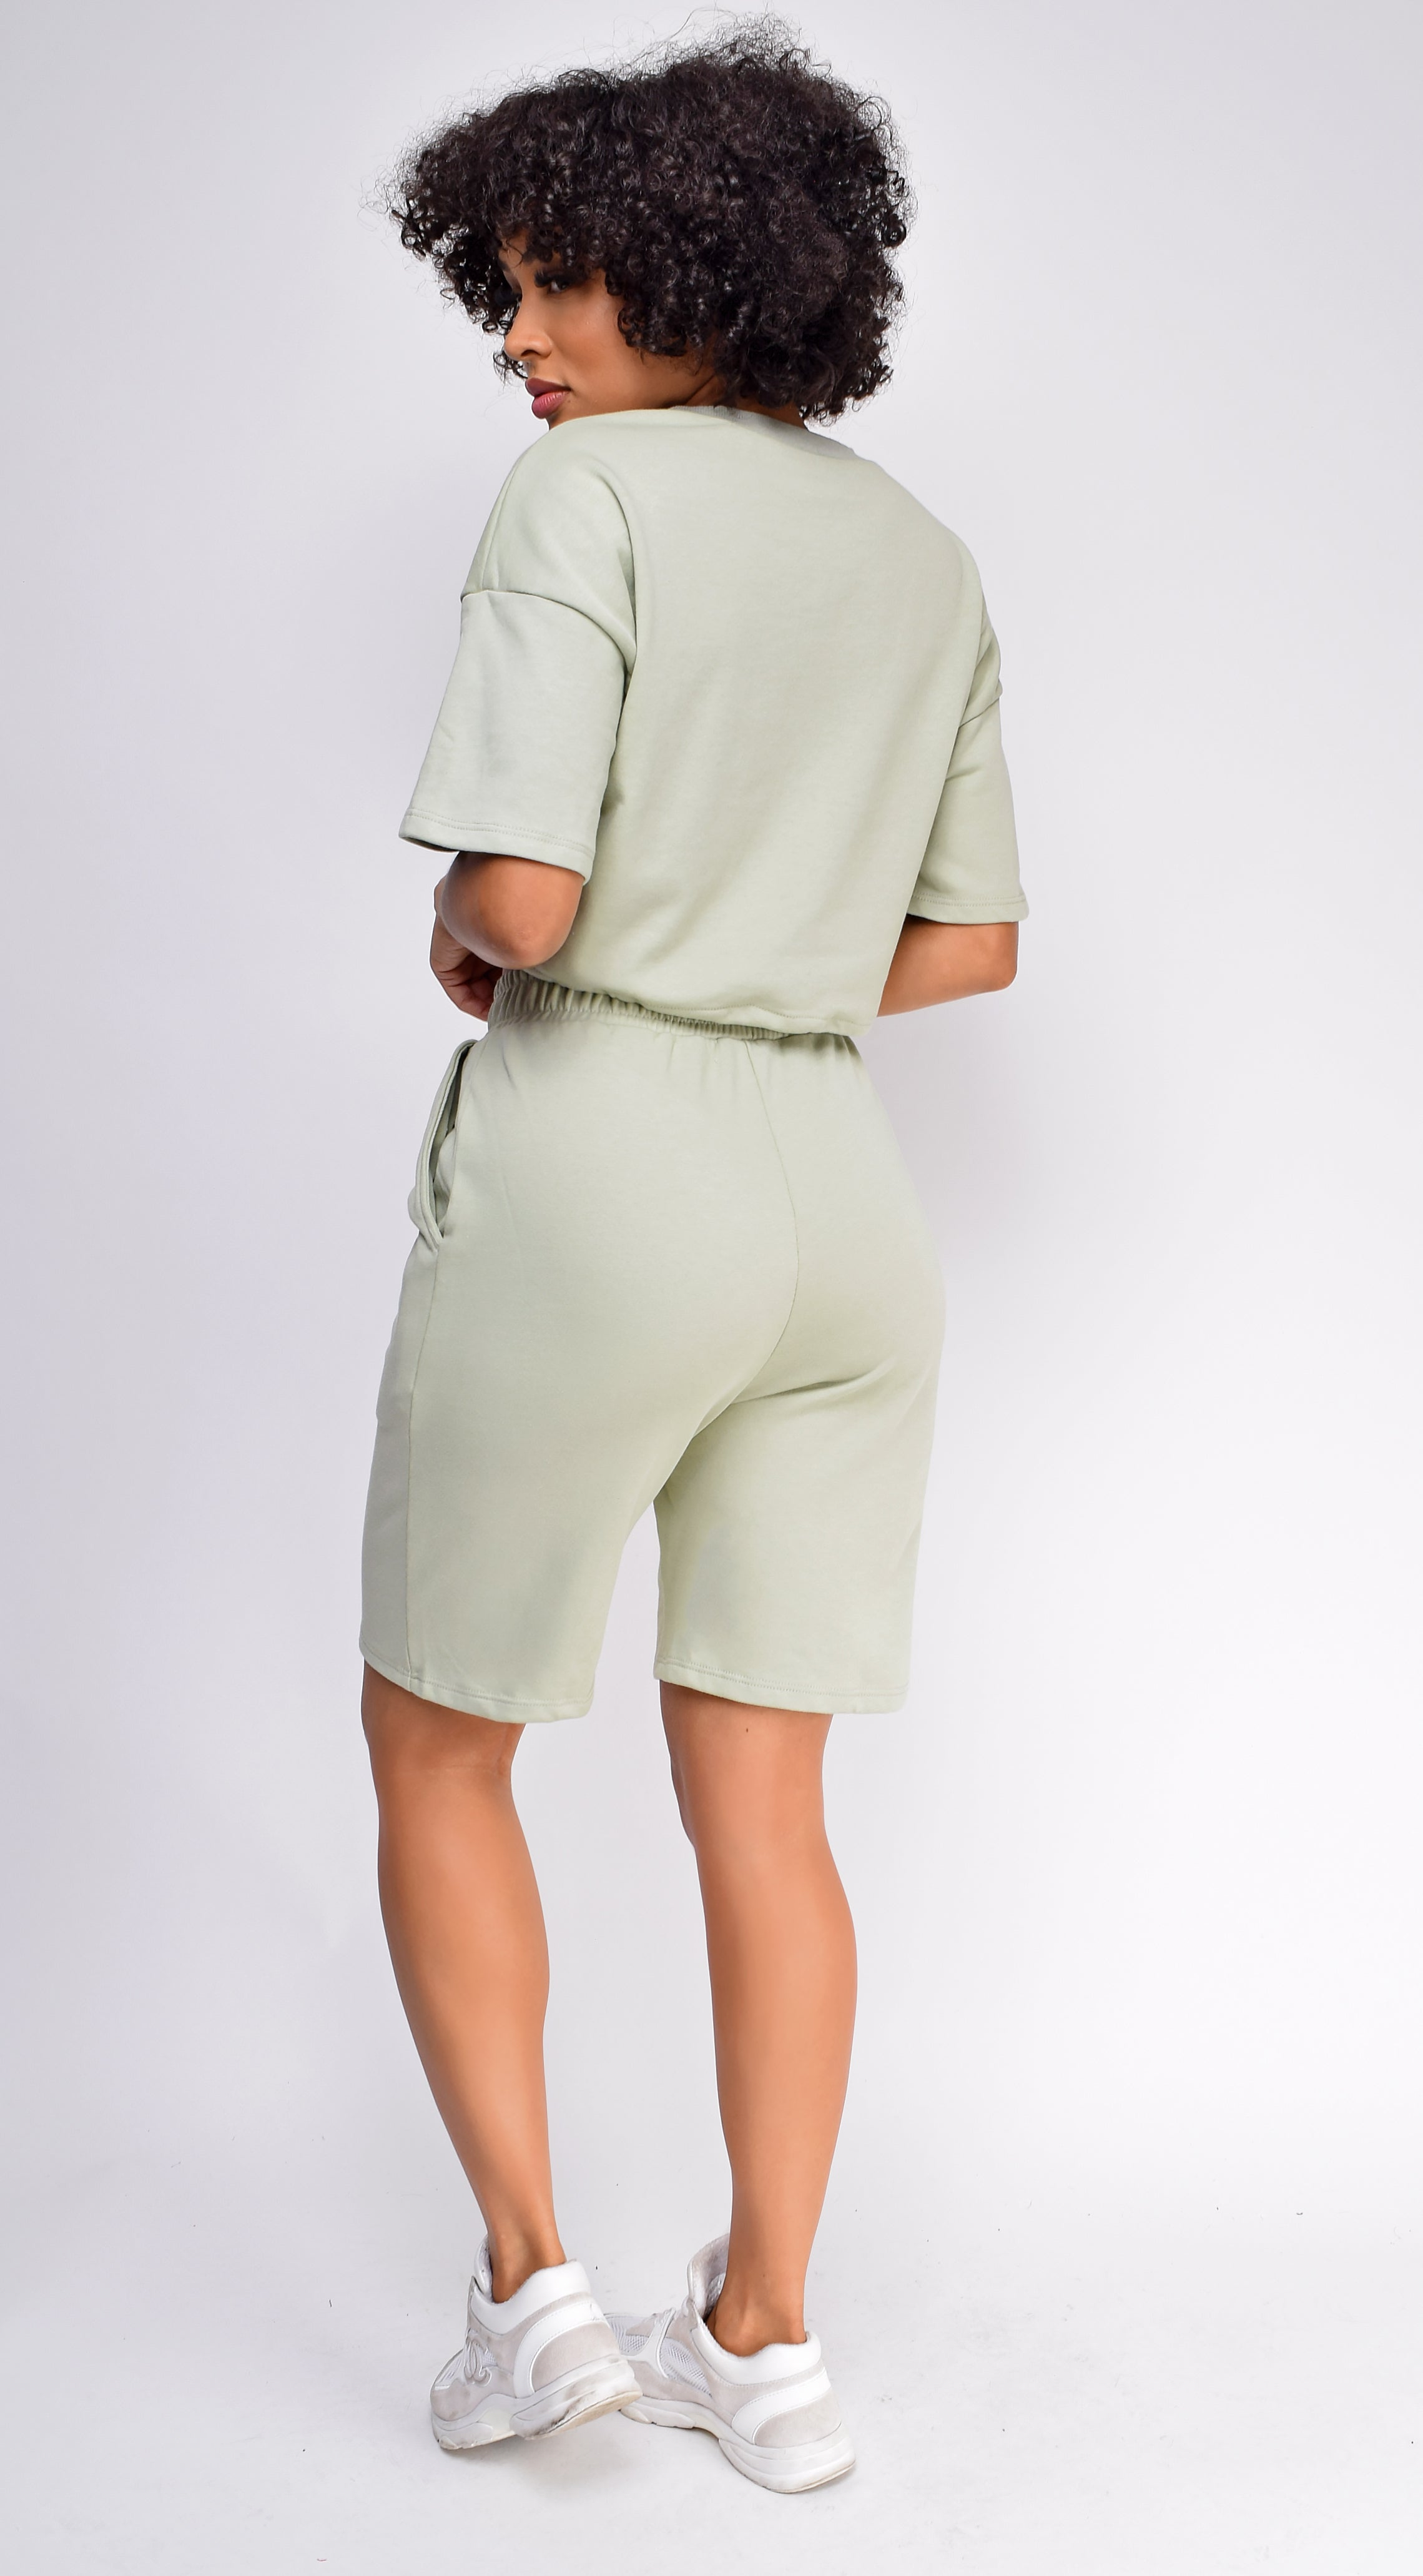 Nia Sage Green Crop Drawstring Top And Short Set